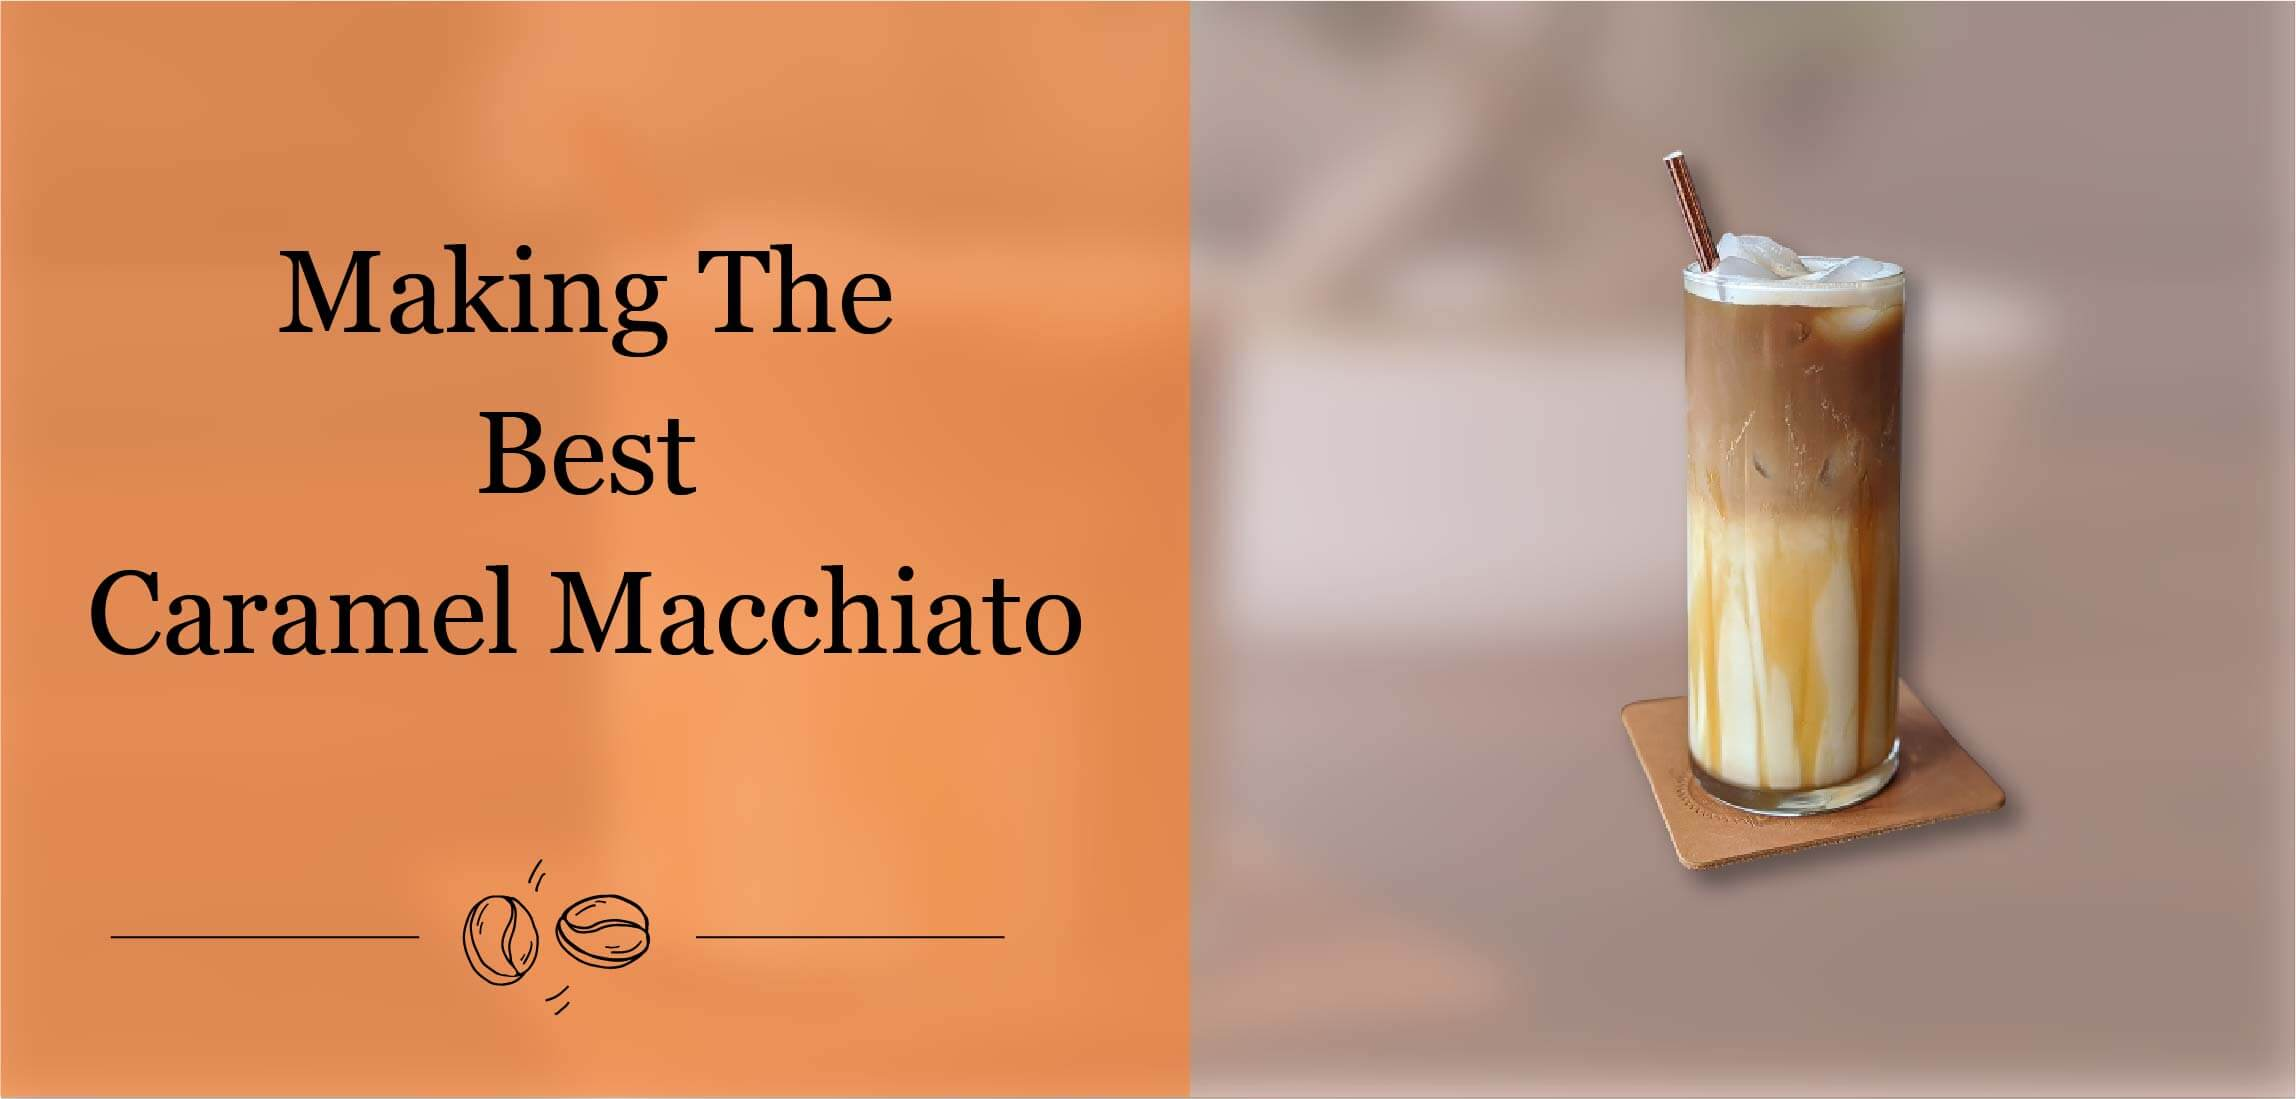 How To Make The Best Caramel Macchiato coffee